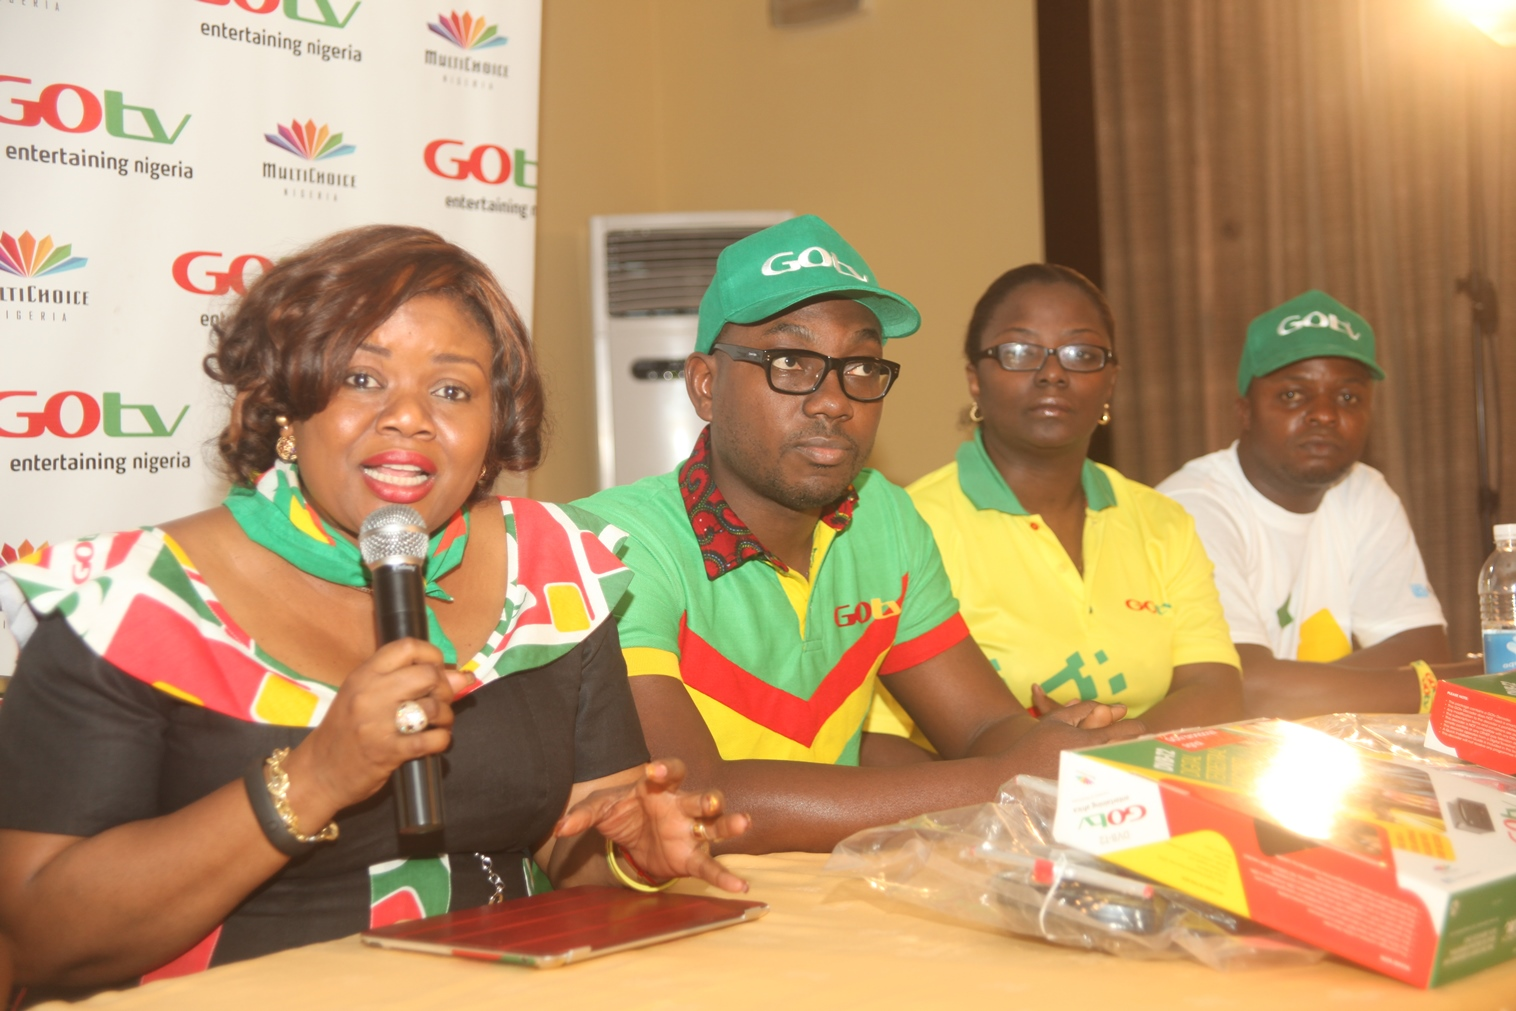 Cross River Govt. Commends GOtv For increasing Awareness on Digital Switch-over